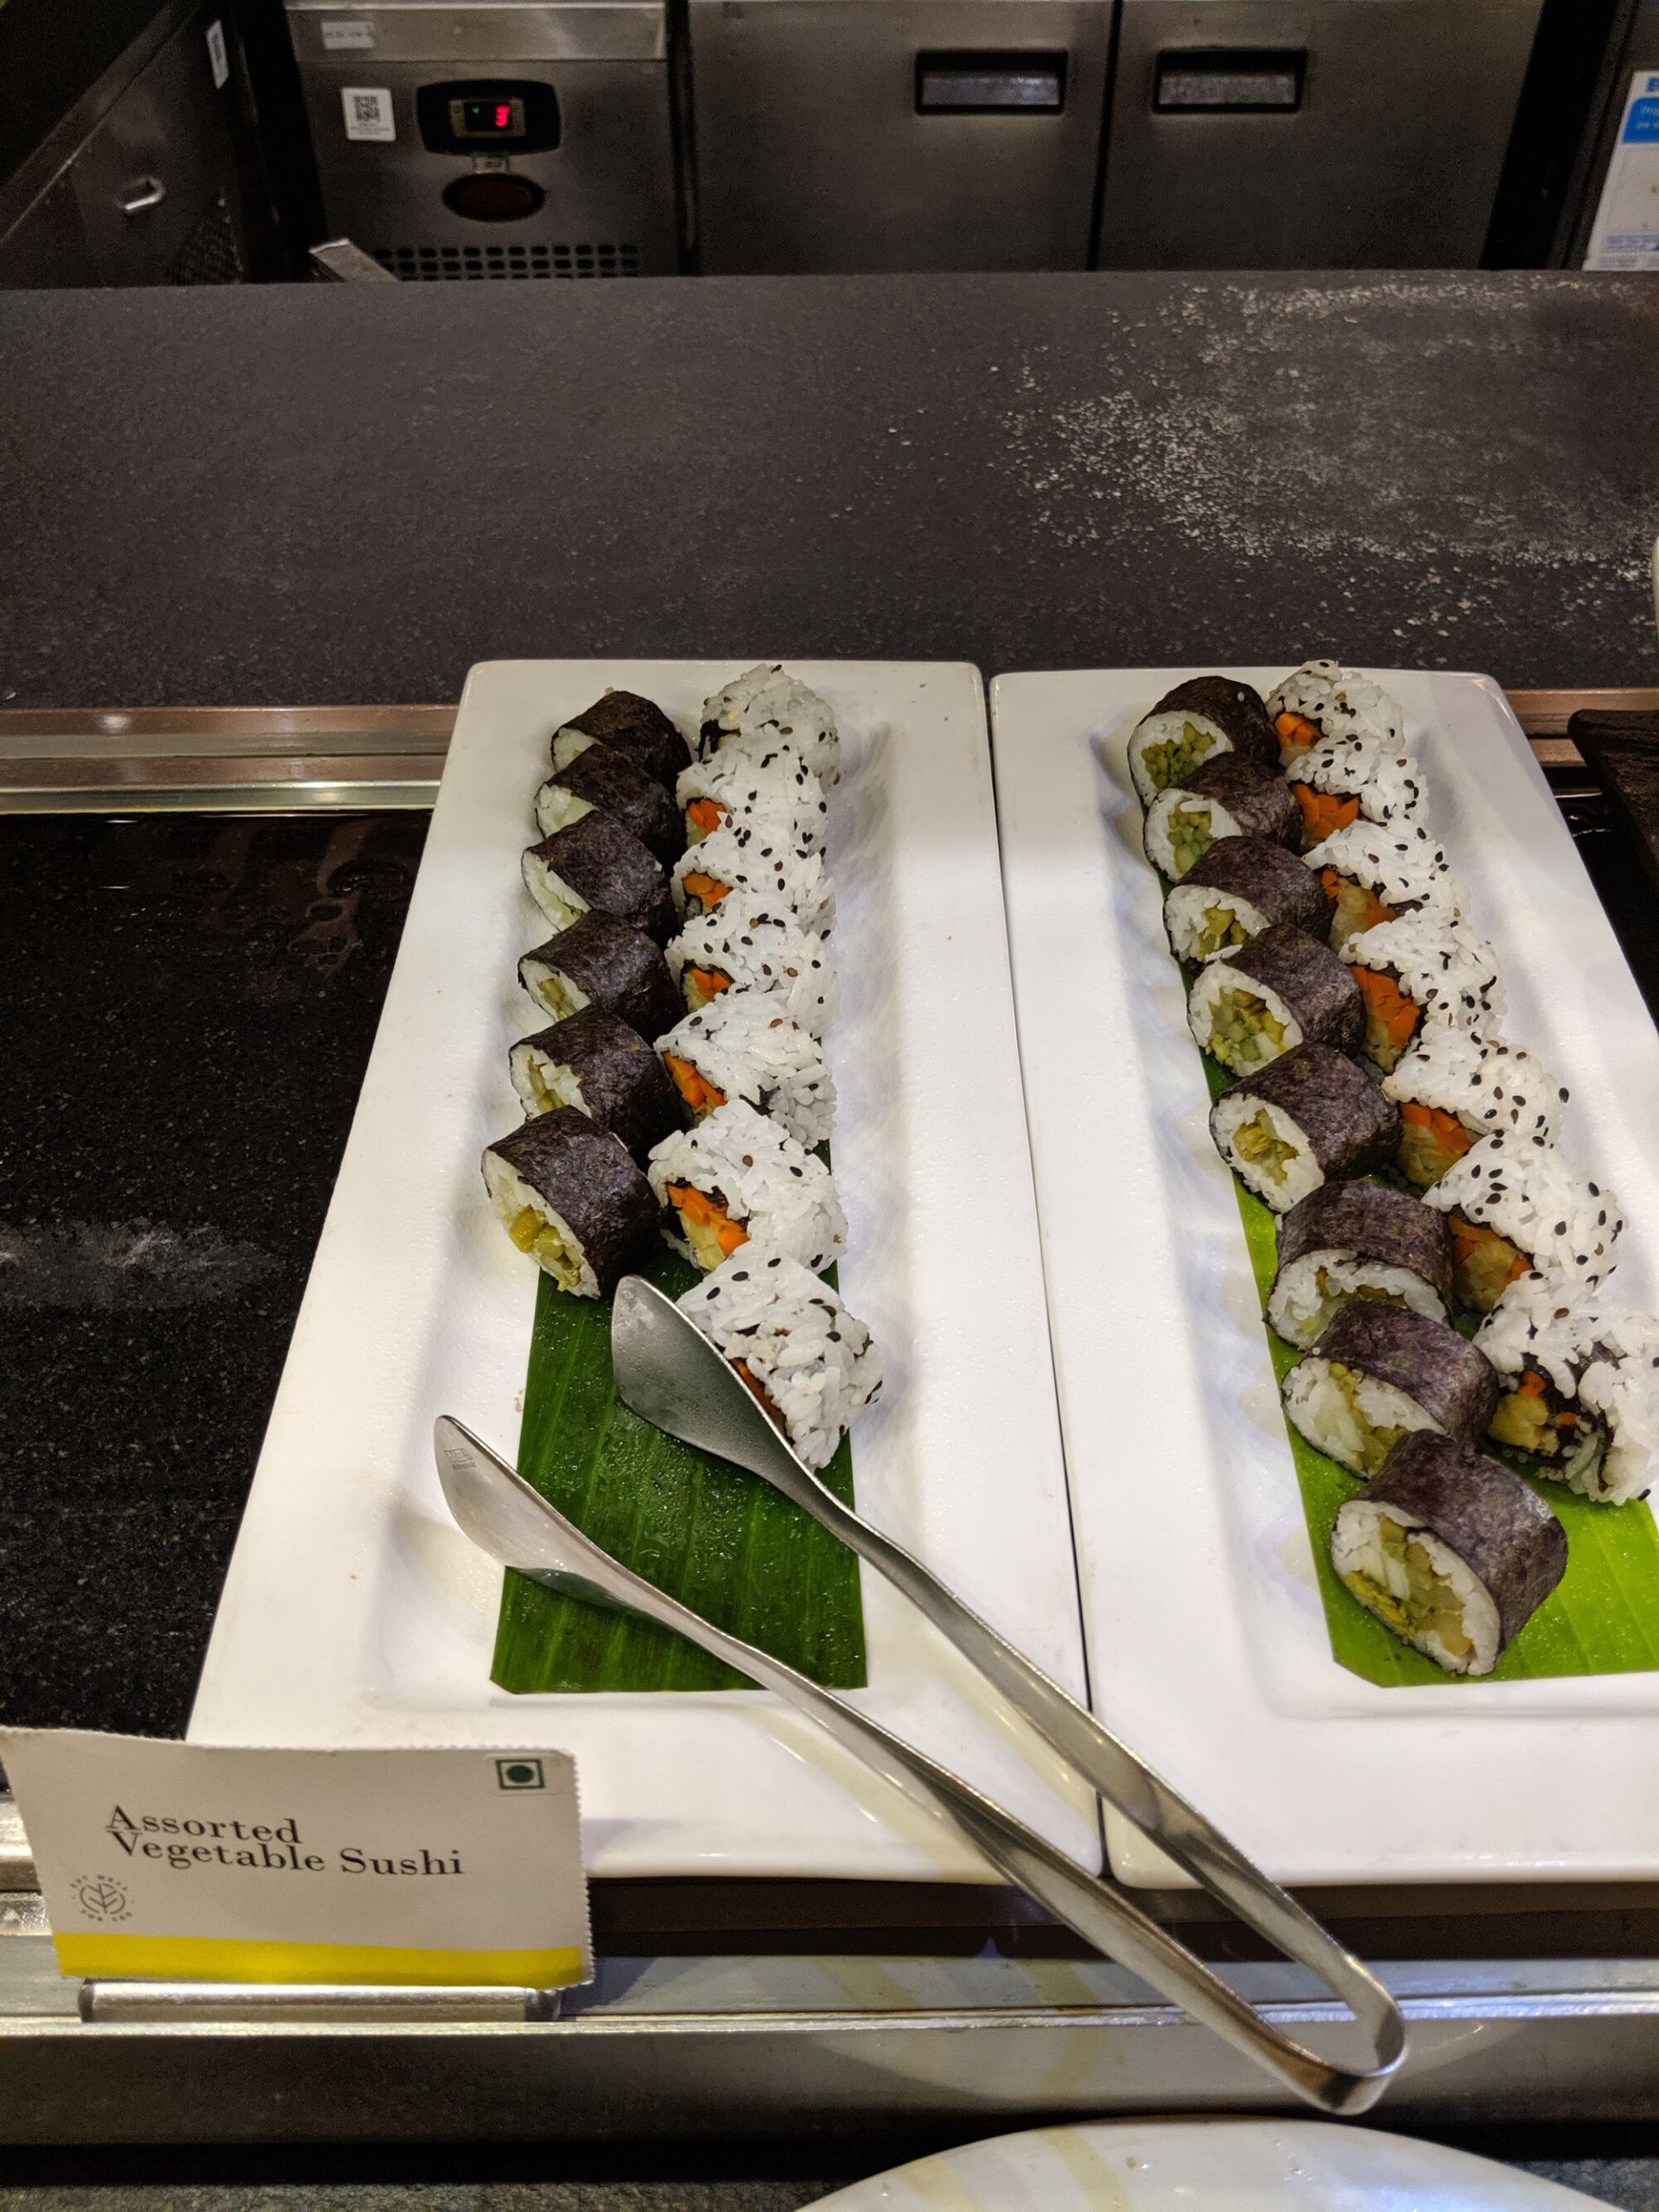 Assorted Vegetable Sushi